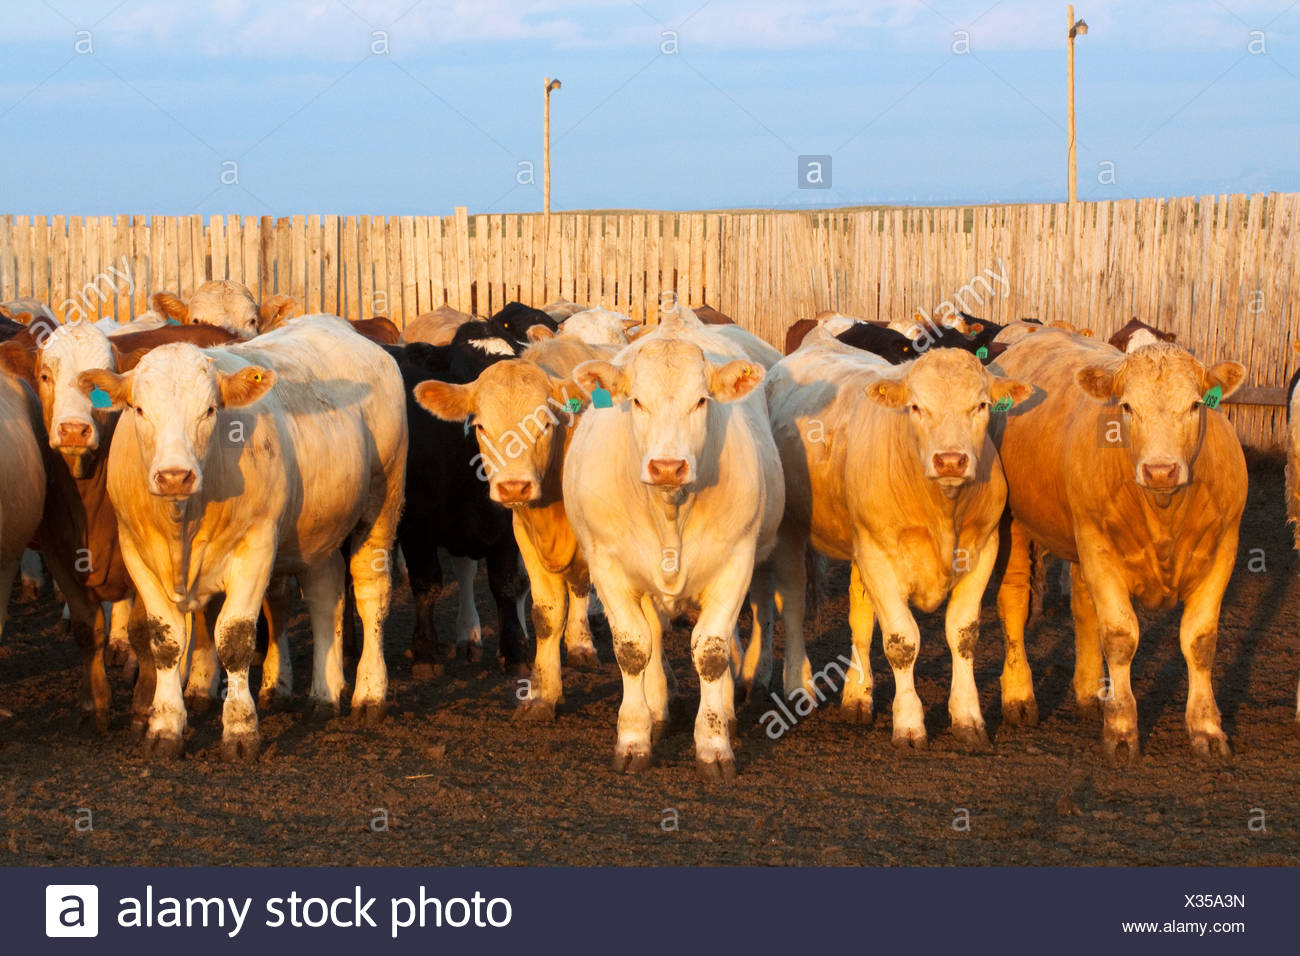 Livestock - Crossbred beef cattle in a feedlot pen at sunset / Alberta, Canada. Stock Photo